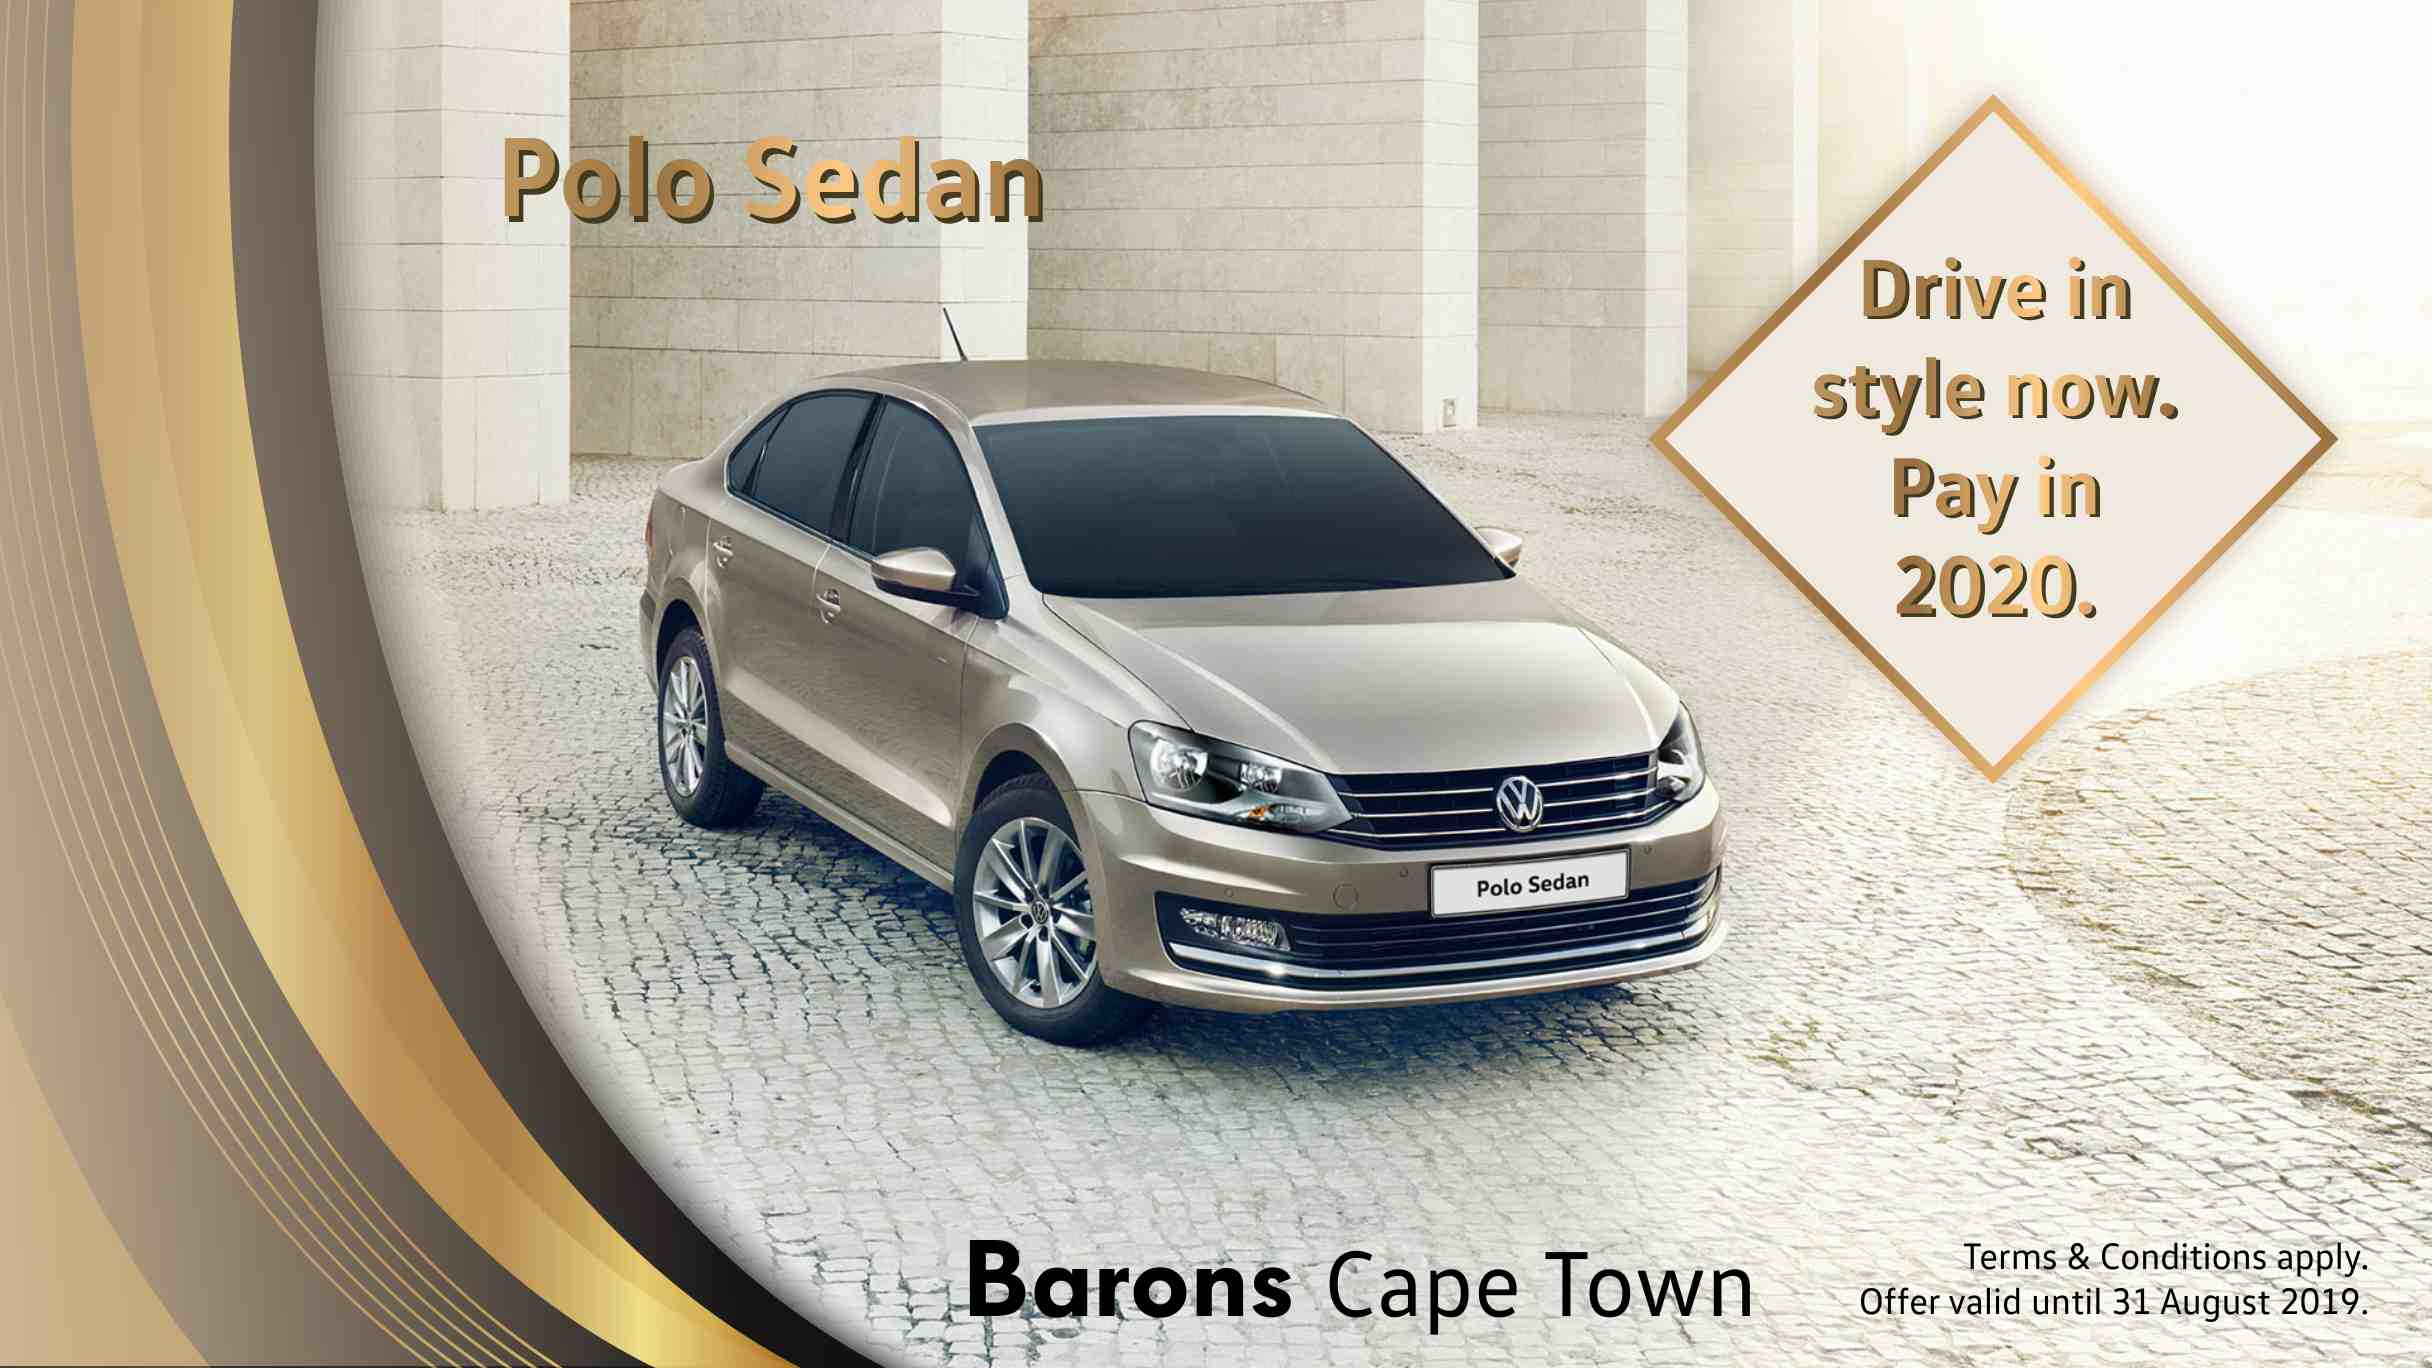 Barons Cape Town Volkswagen South African Dealership